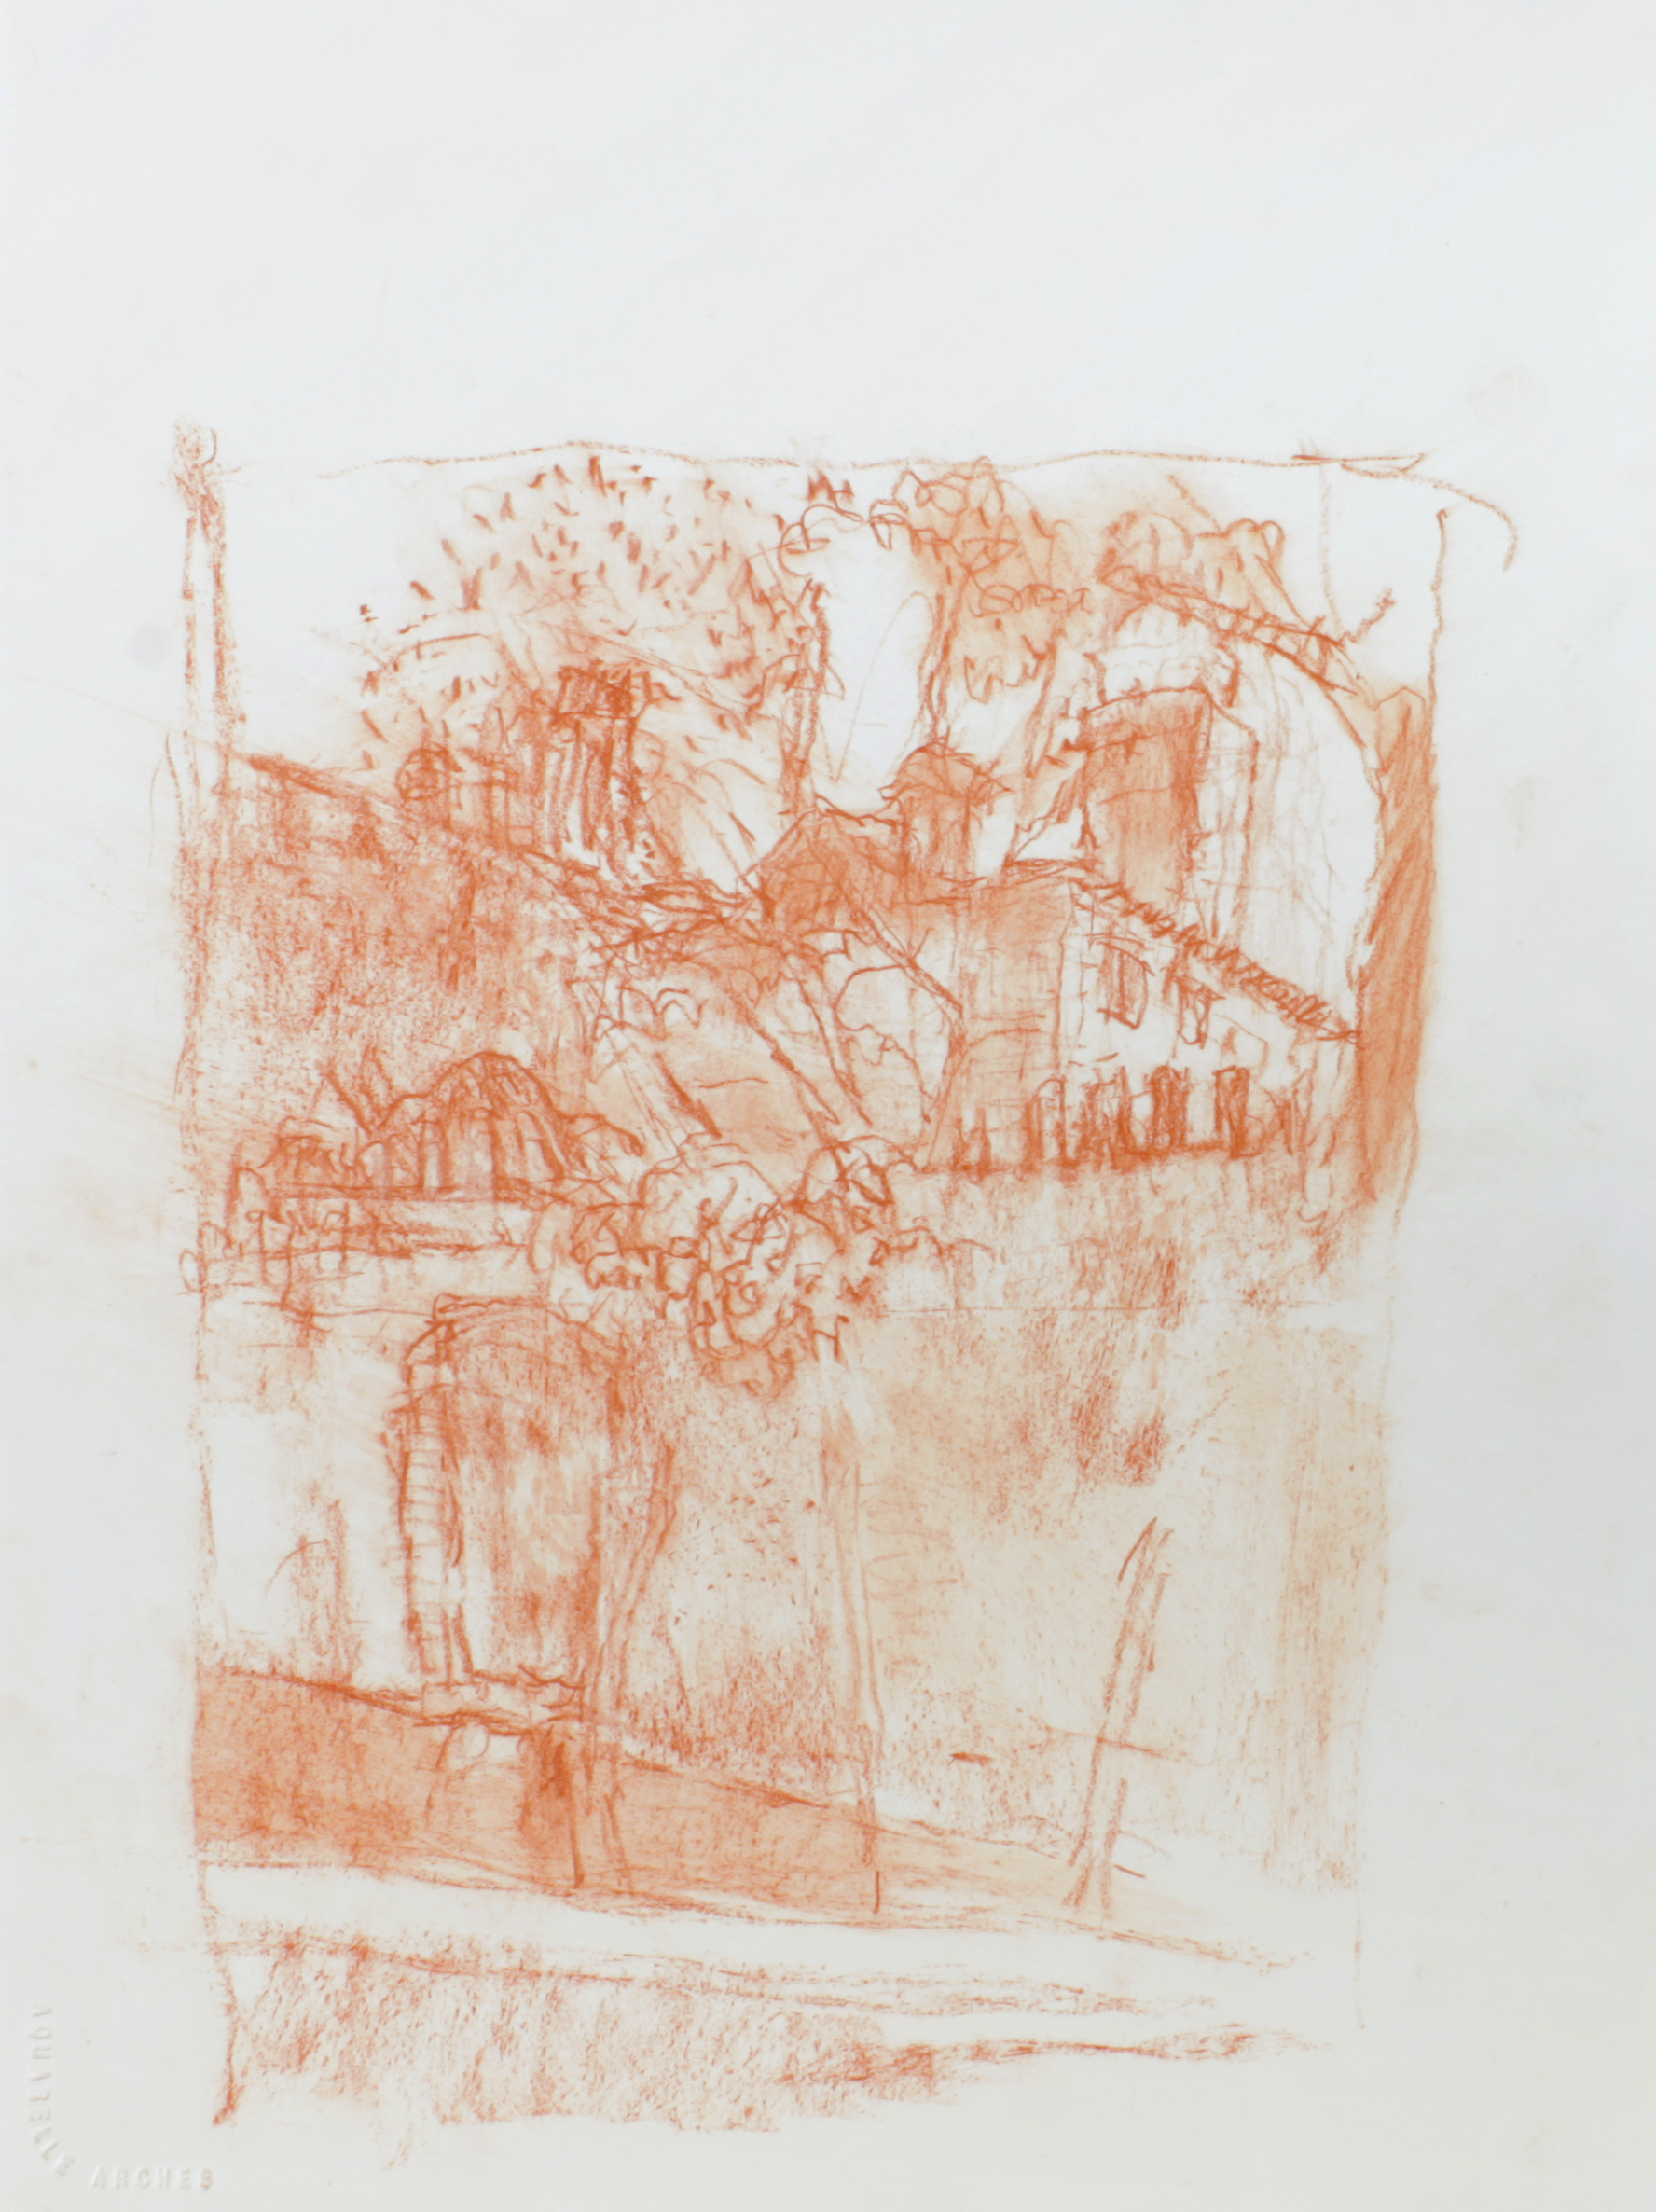 1990s_Venice_Wall_and_Garden_red_conté_on_paper_15x11in_WPF067.jpg